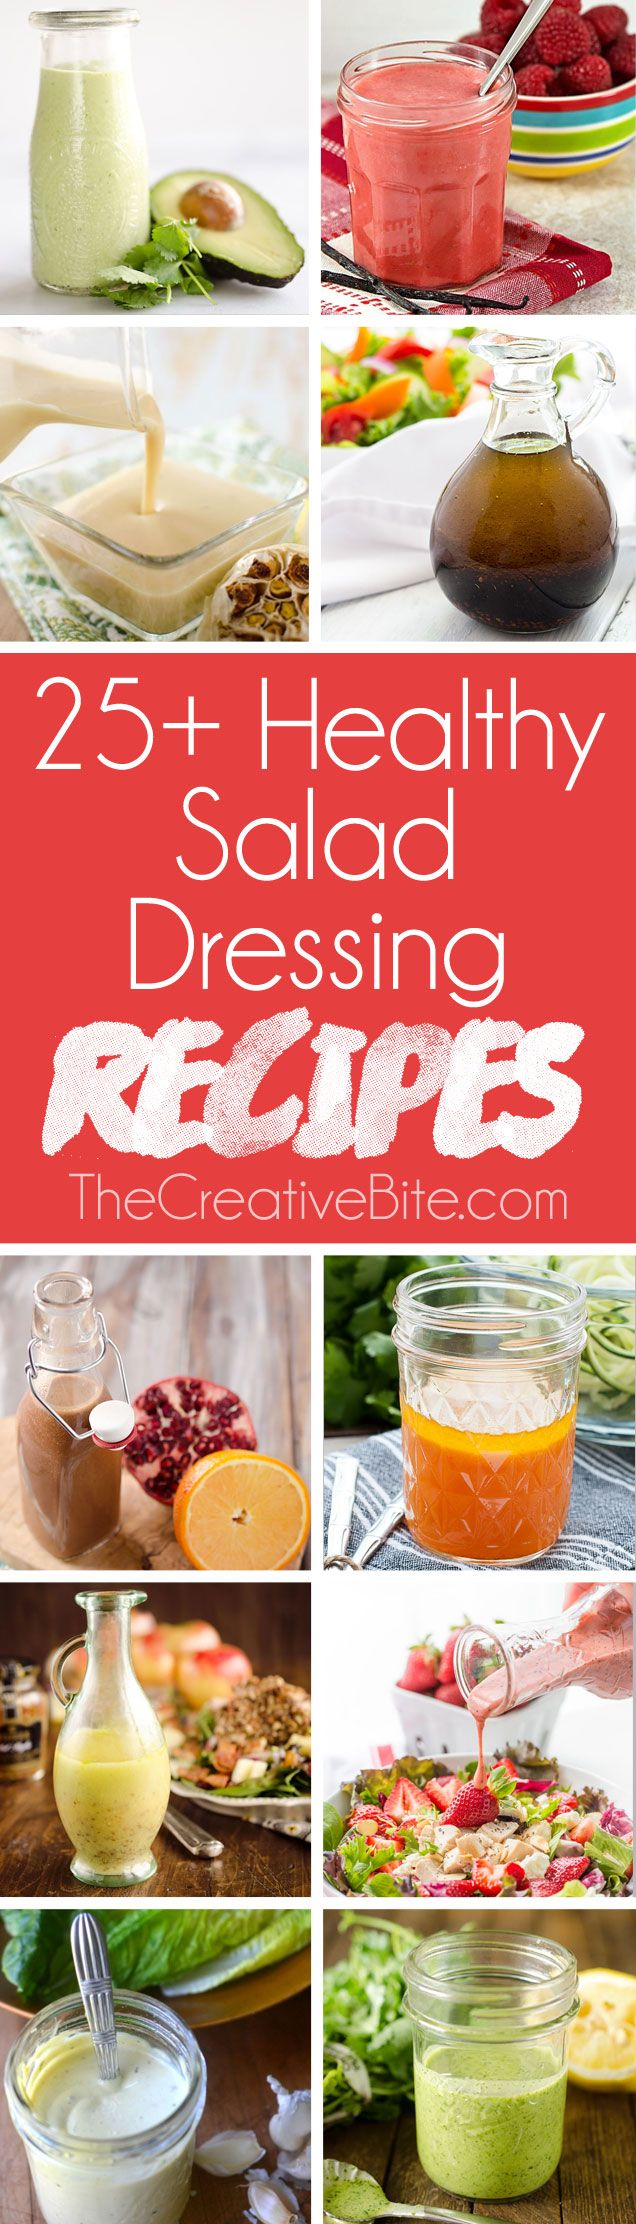 Check out these 25+ Healthy Salad Dressing Recipes perfect for every salad! From a light vinaigrette to creamy Greek yogurt based dressings, there are so many amazing homemade healthy salad dressing recipes to choose from. #Healthy #Salad #Dressings